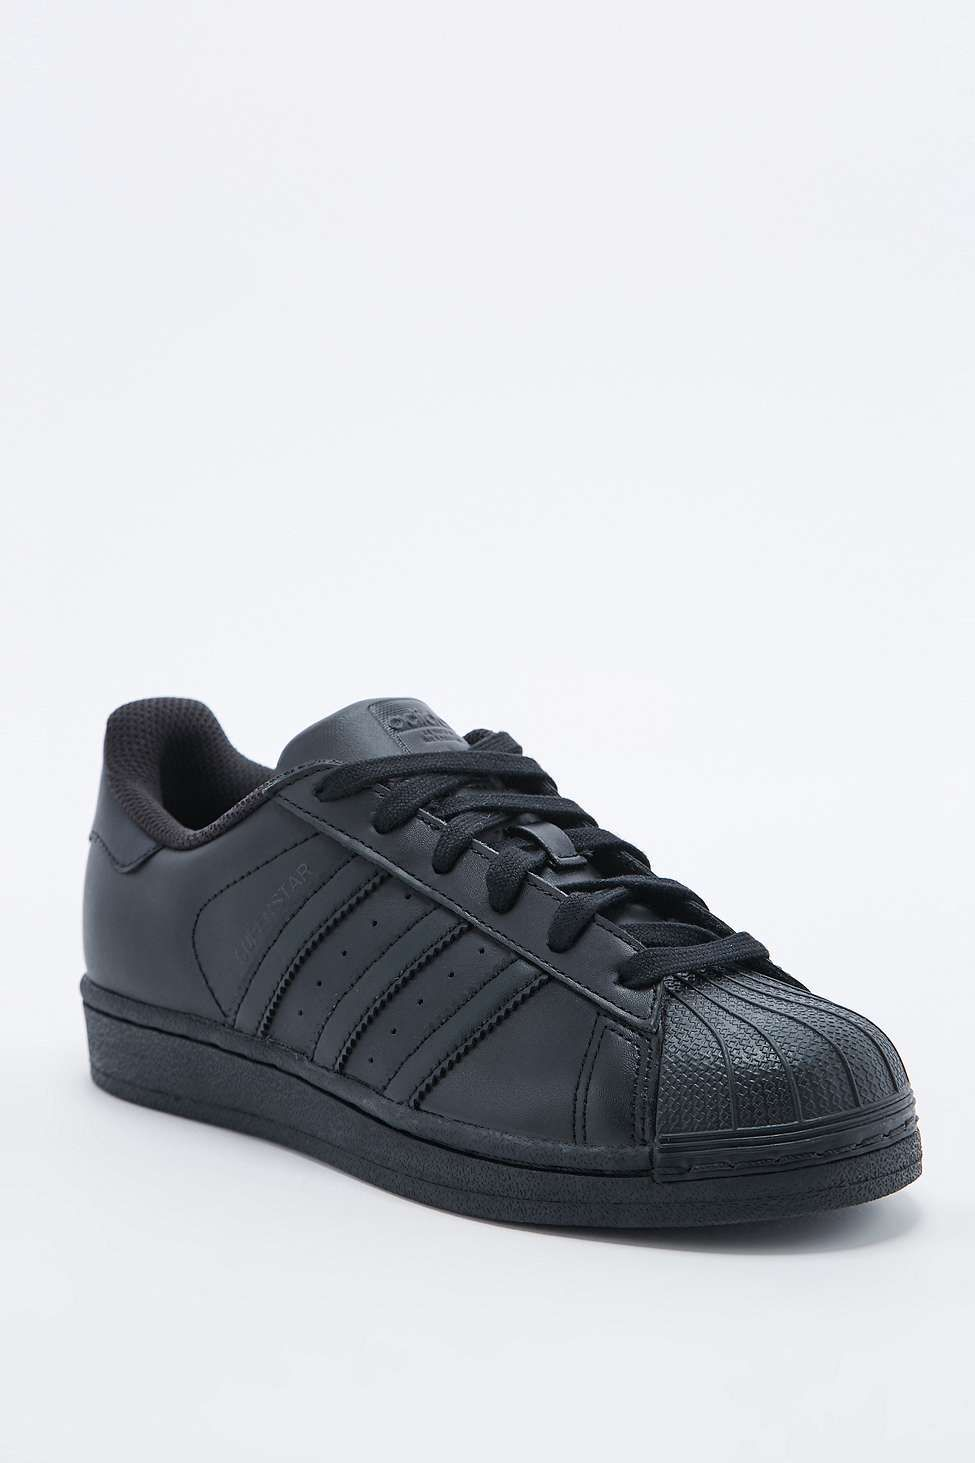 b94e3e837f7f67 Adidas Superstar All Black Trainer